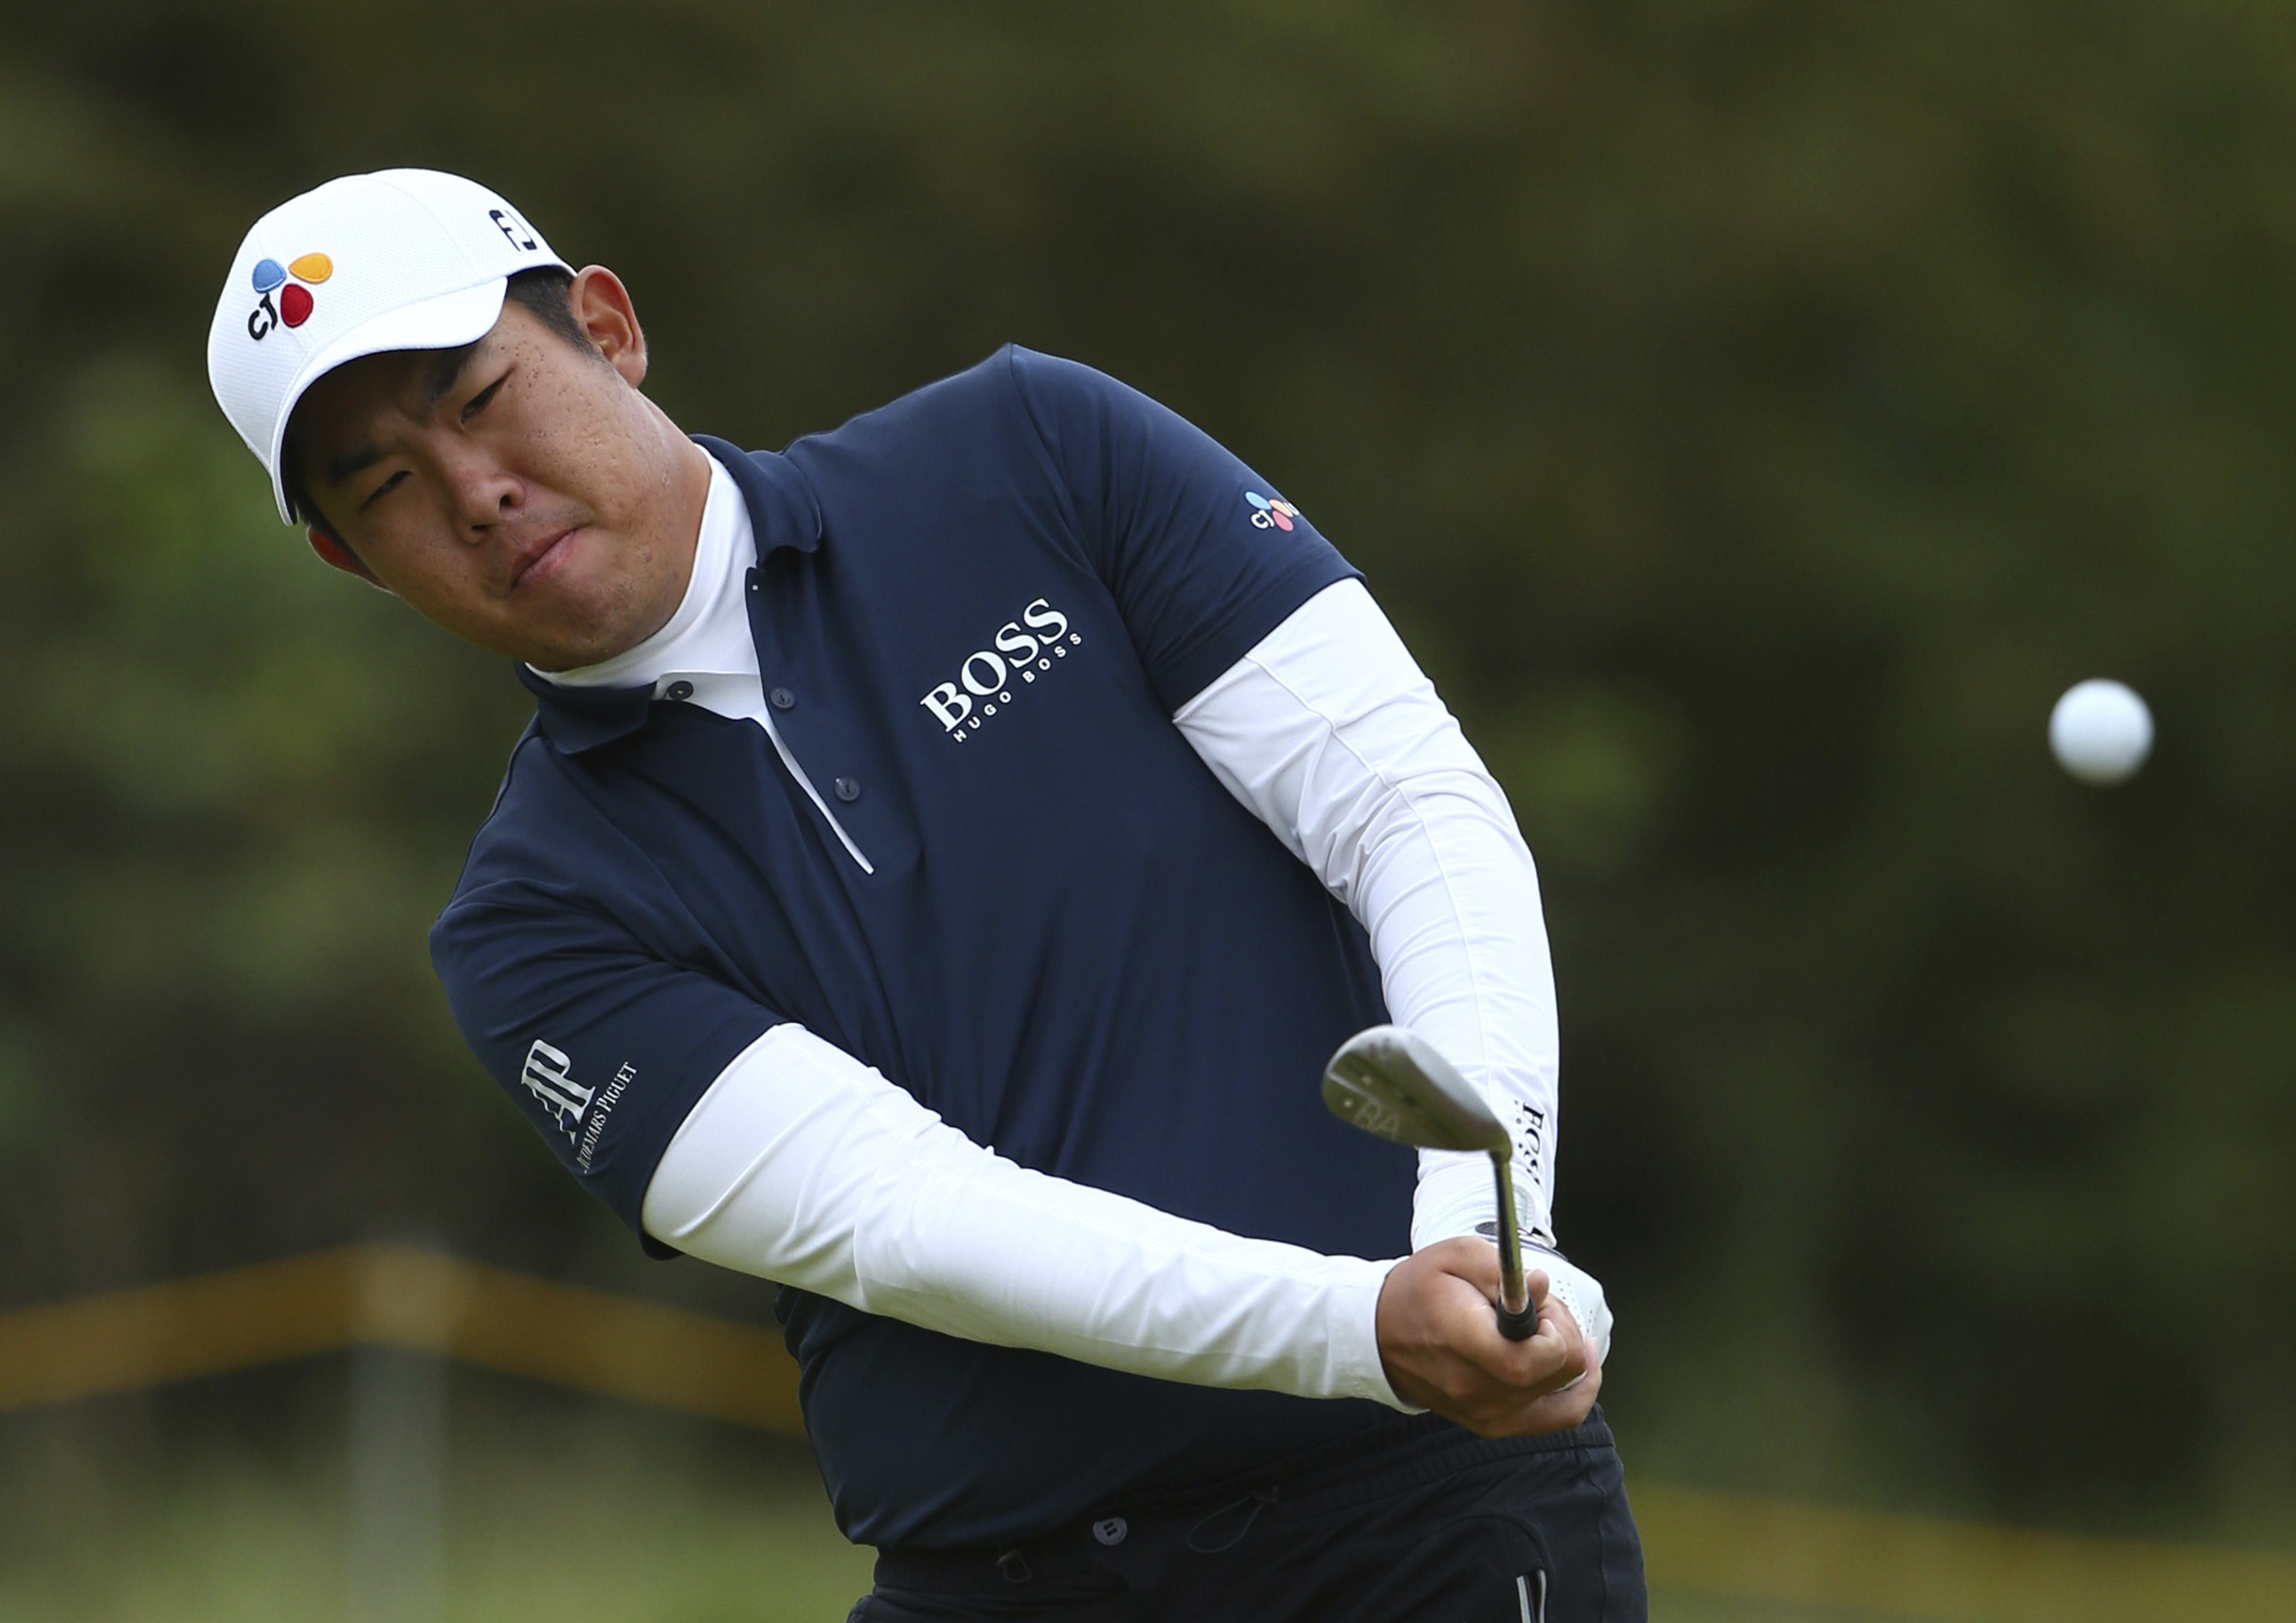 Korea's Byeong Hun An plays a shot on the 4th hole during the first round of the British Open Golf Championship, at Royal Birkdale, Southport, England Thursday, July 20, 2017. (AP Photo/Dave Thompson)